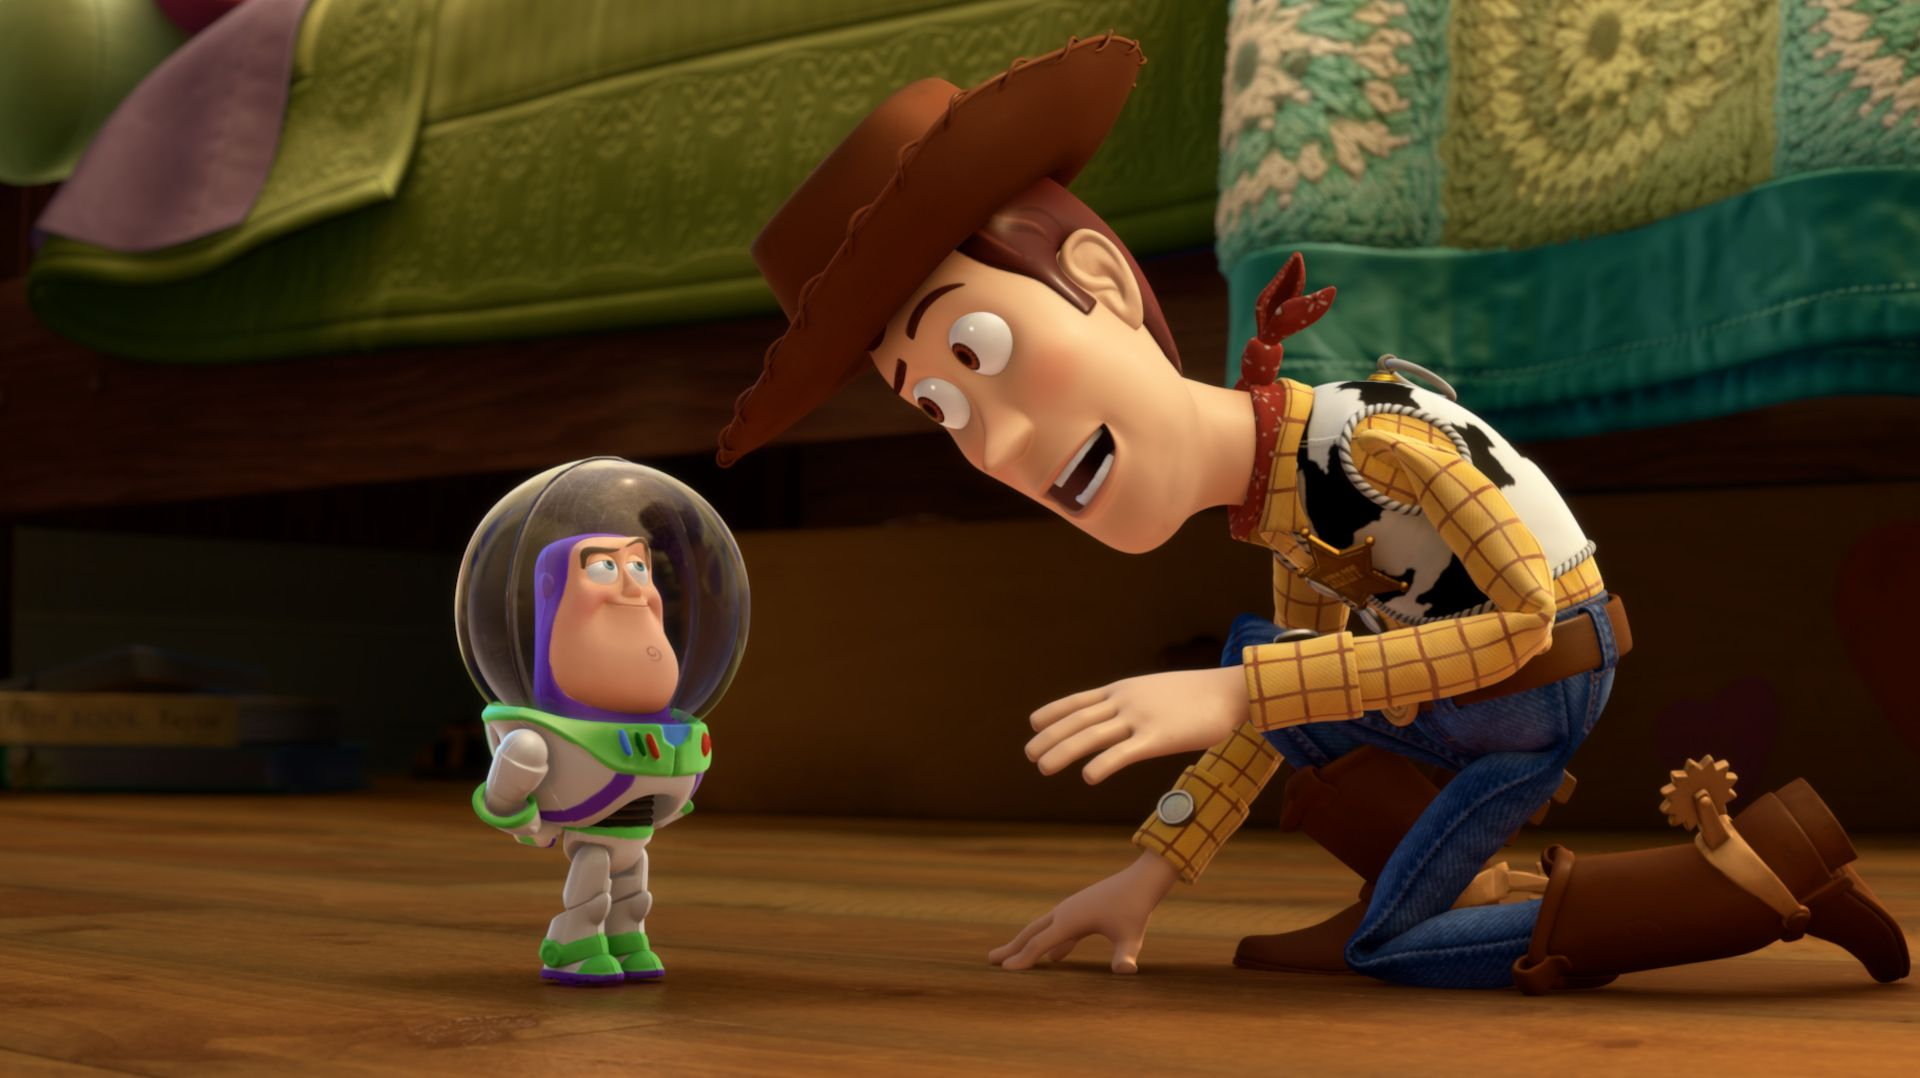 Toy Story Toys : Director angus maclane talks new toy story short small fry